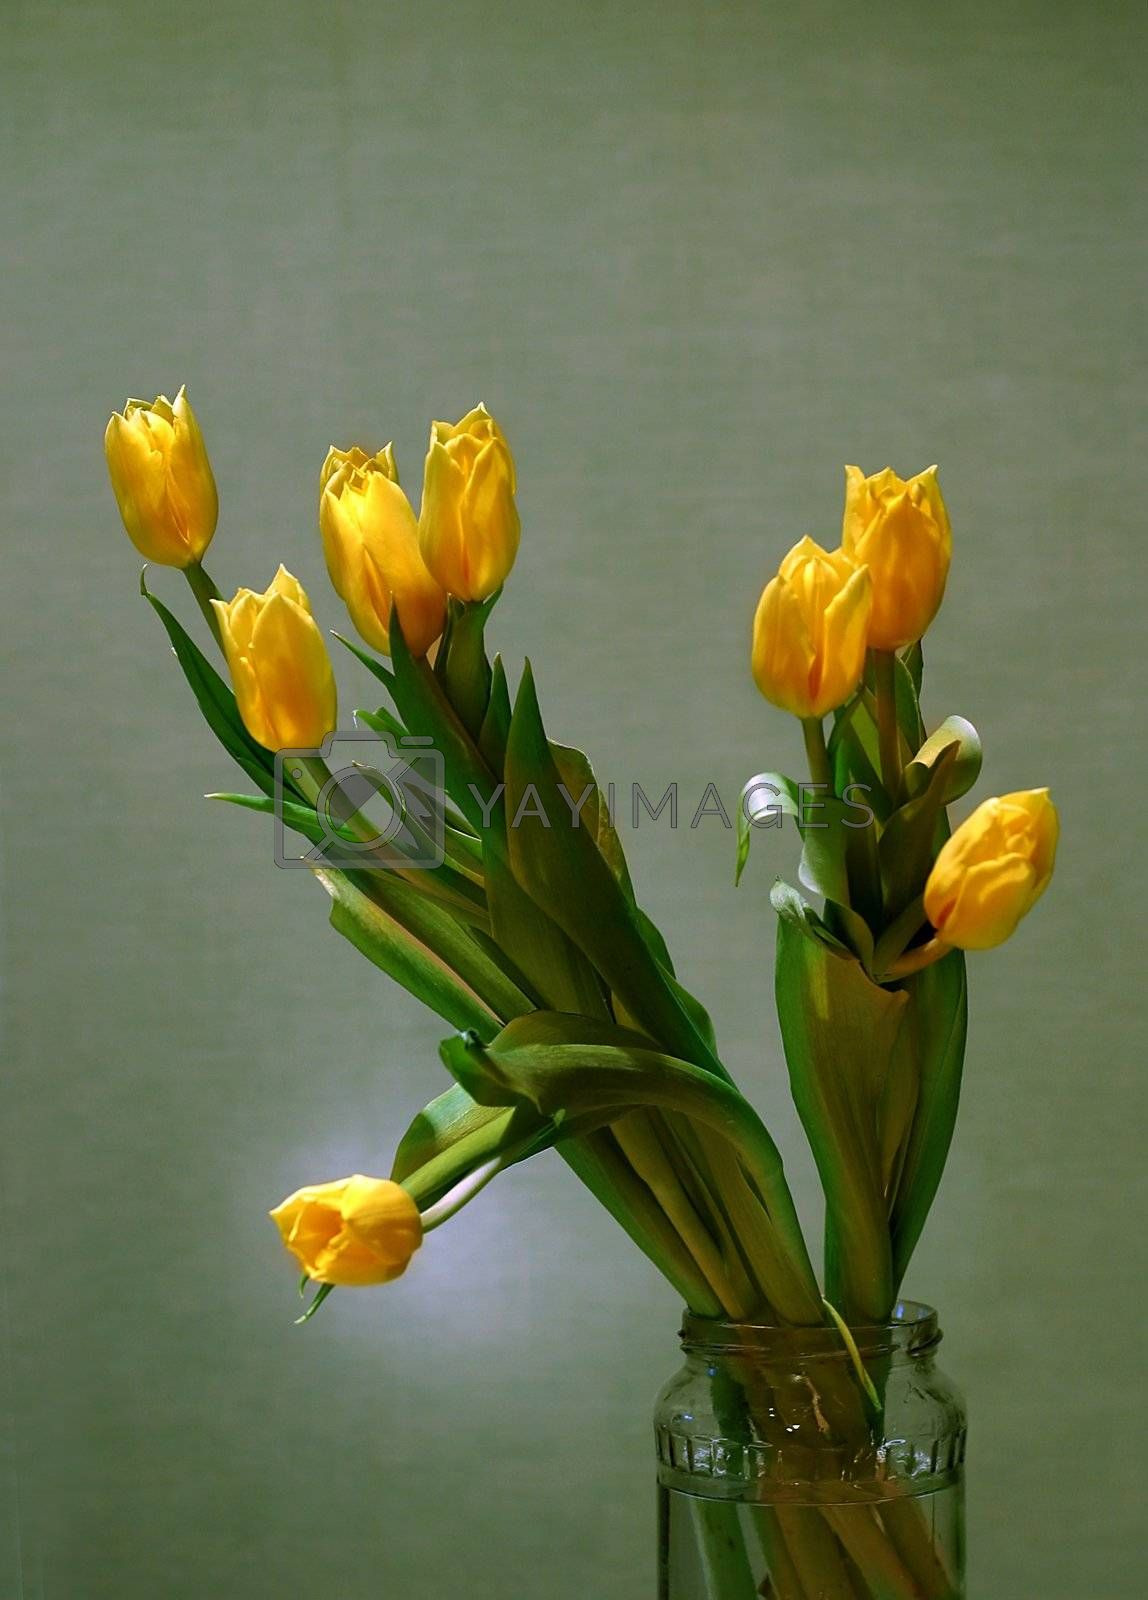 The image of a bouquet of yellow tulips on a green background